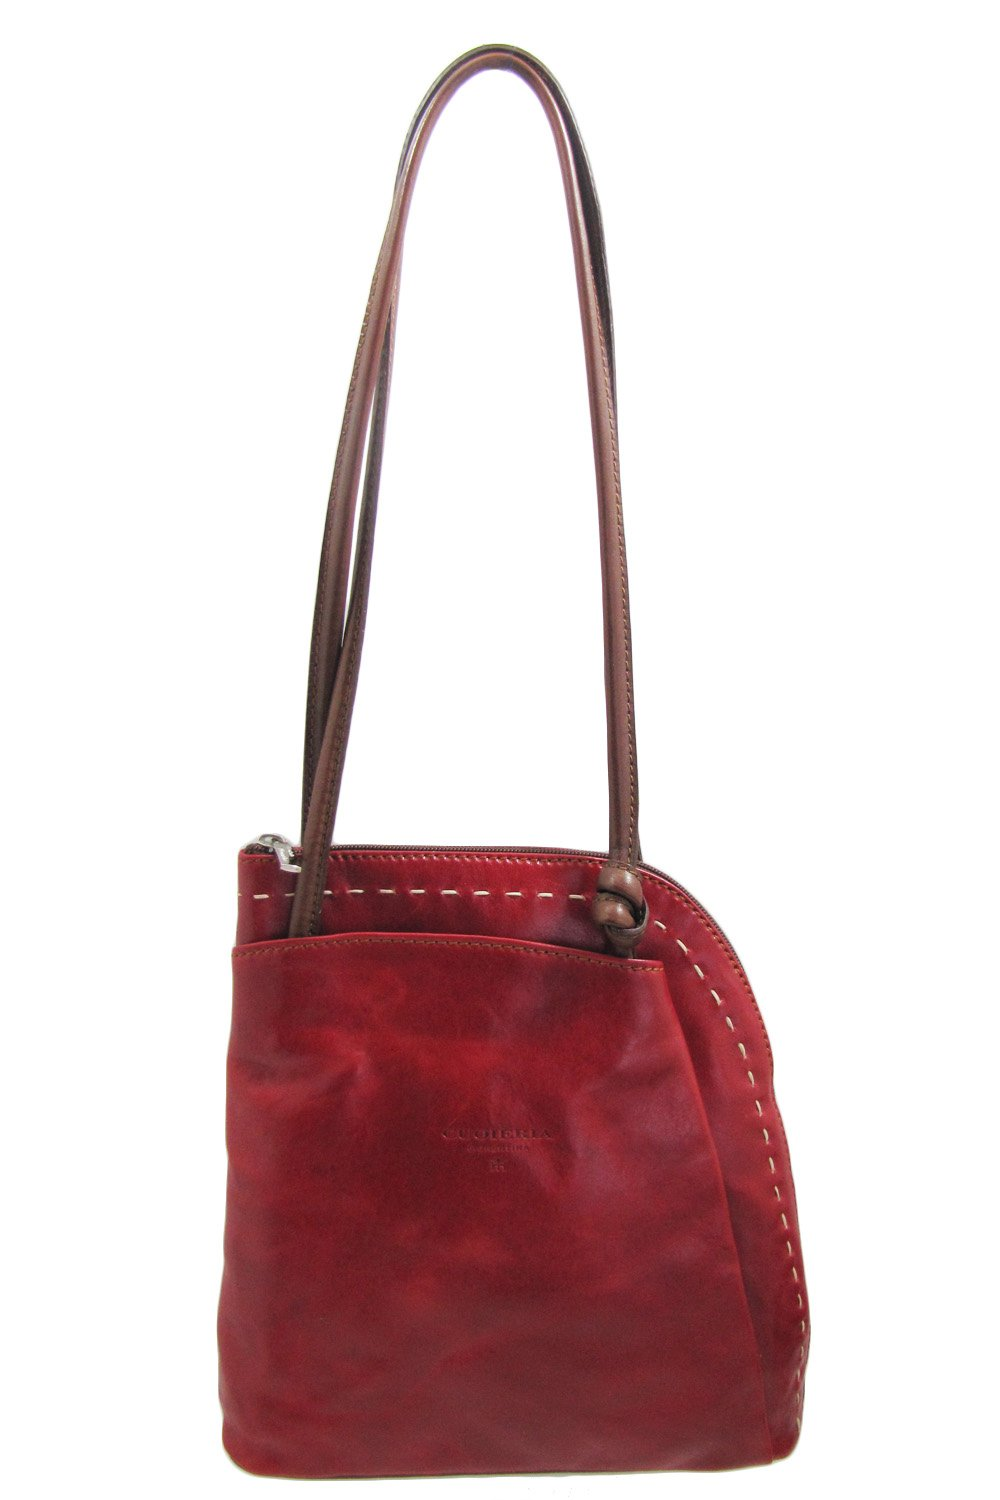 Cuoieria Fiorentina Italian Leather Convertible Shoulder Backpack Handbag (Red) by Cuoieria Fiorentina